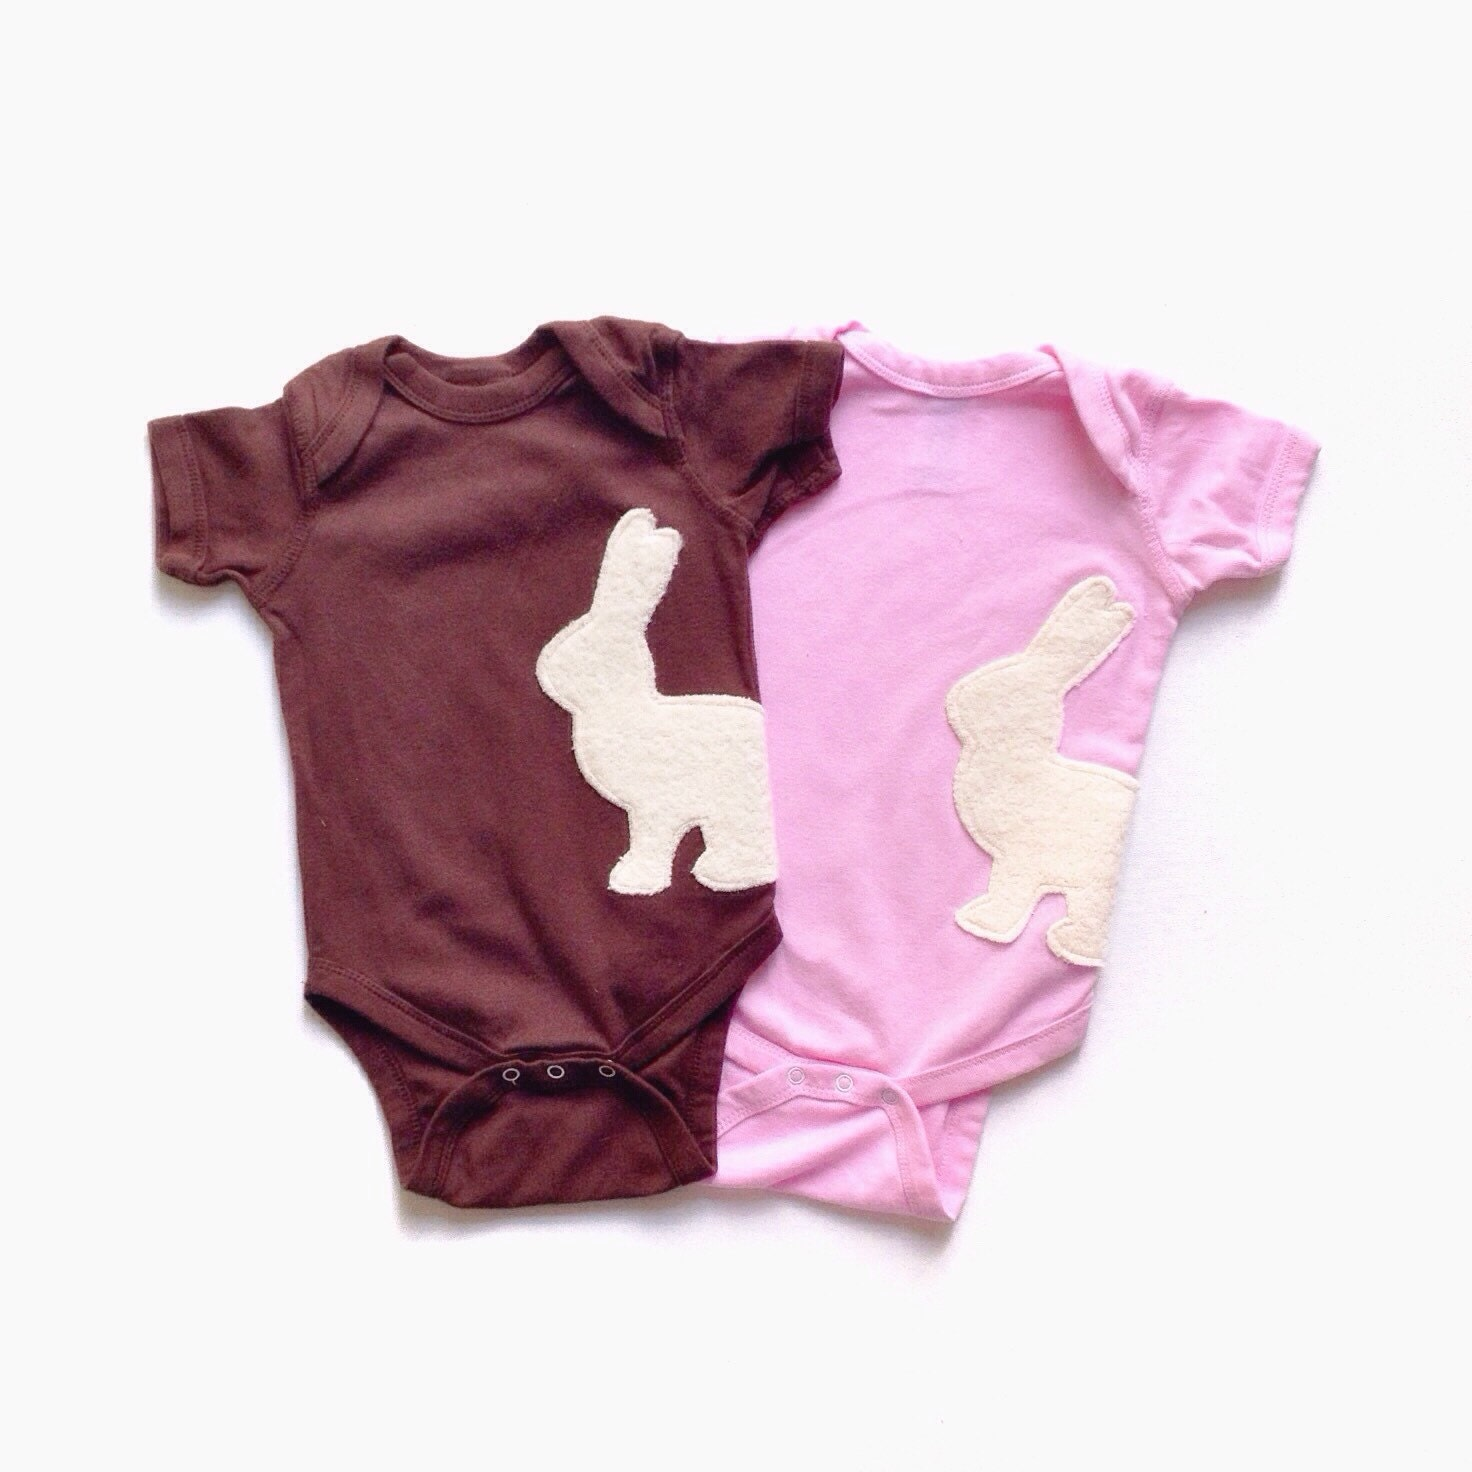 Easter baby easter gift cute baby clothes baby girl zoom negle Image collections